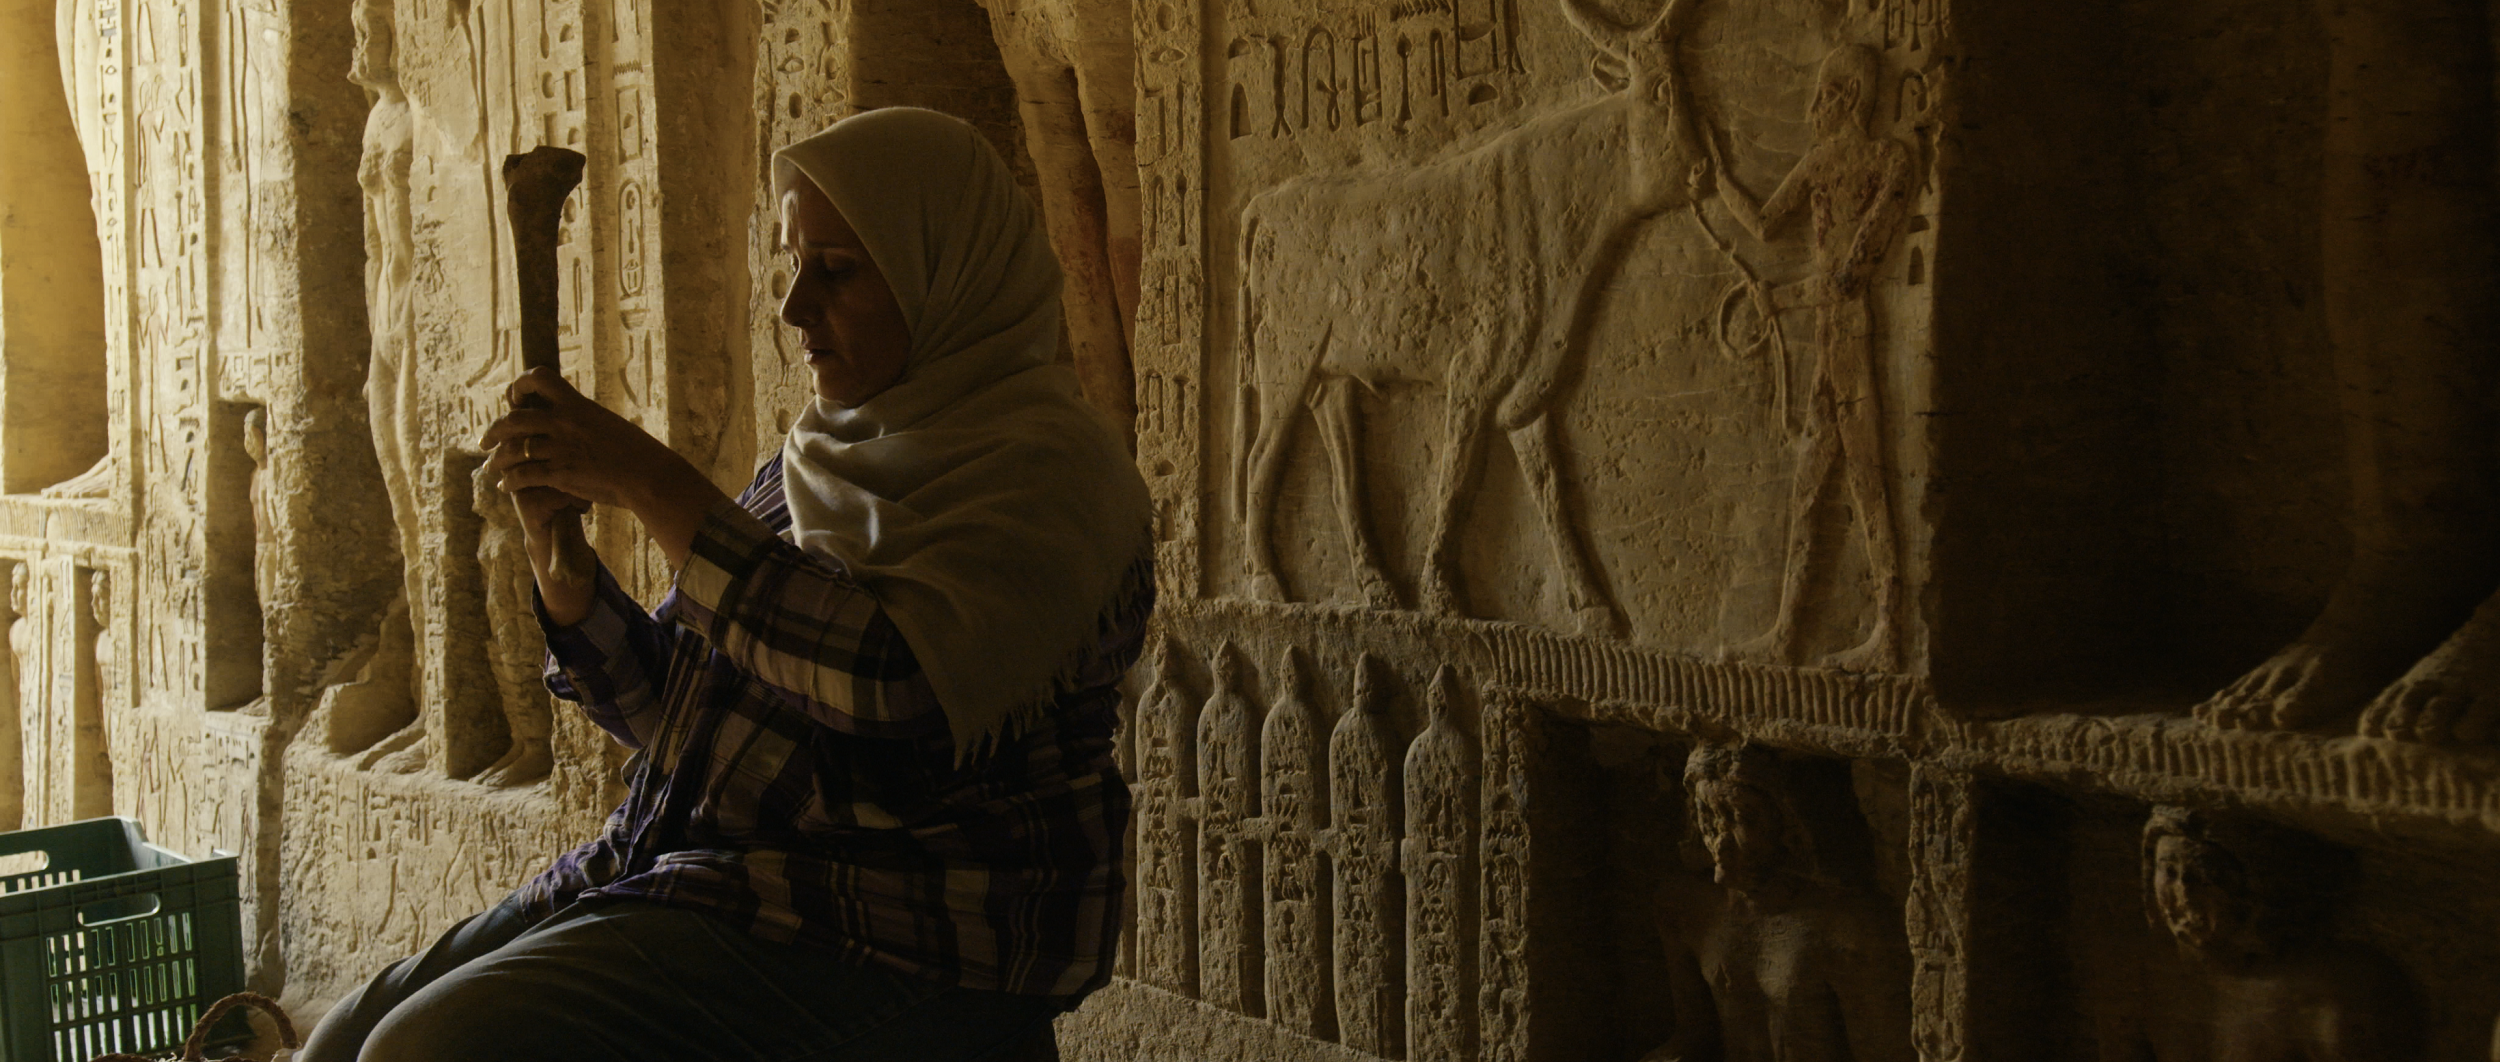 Sharing 'Secrets of the Saqqara Tomb' With Members Around the World